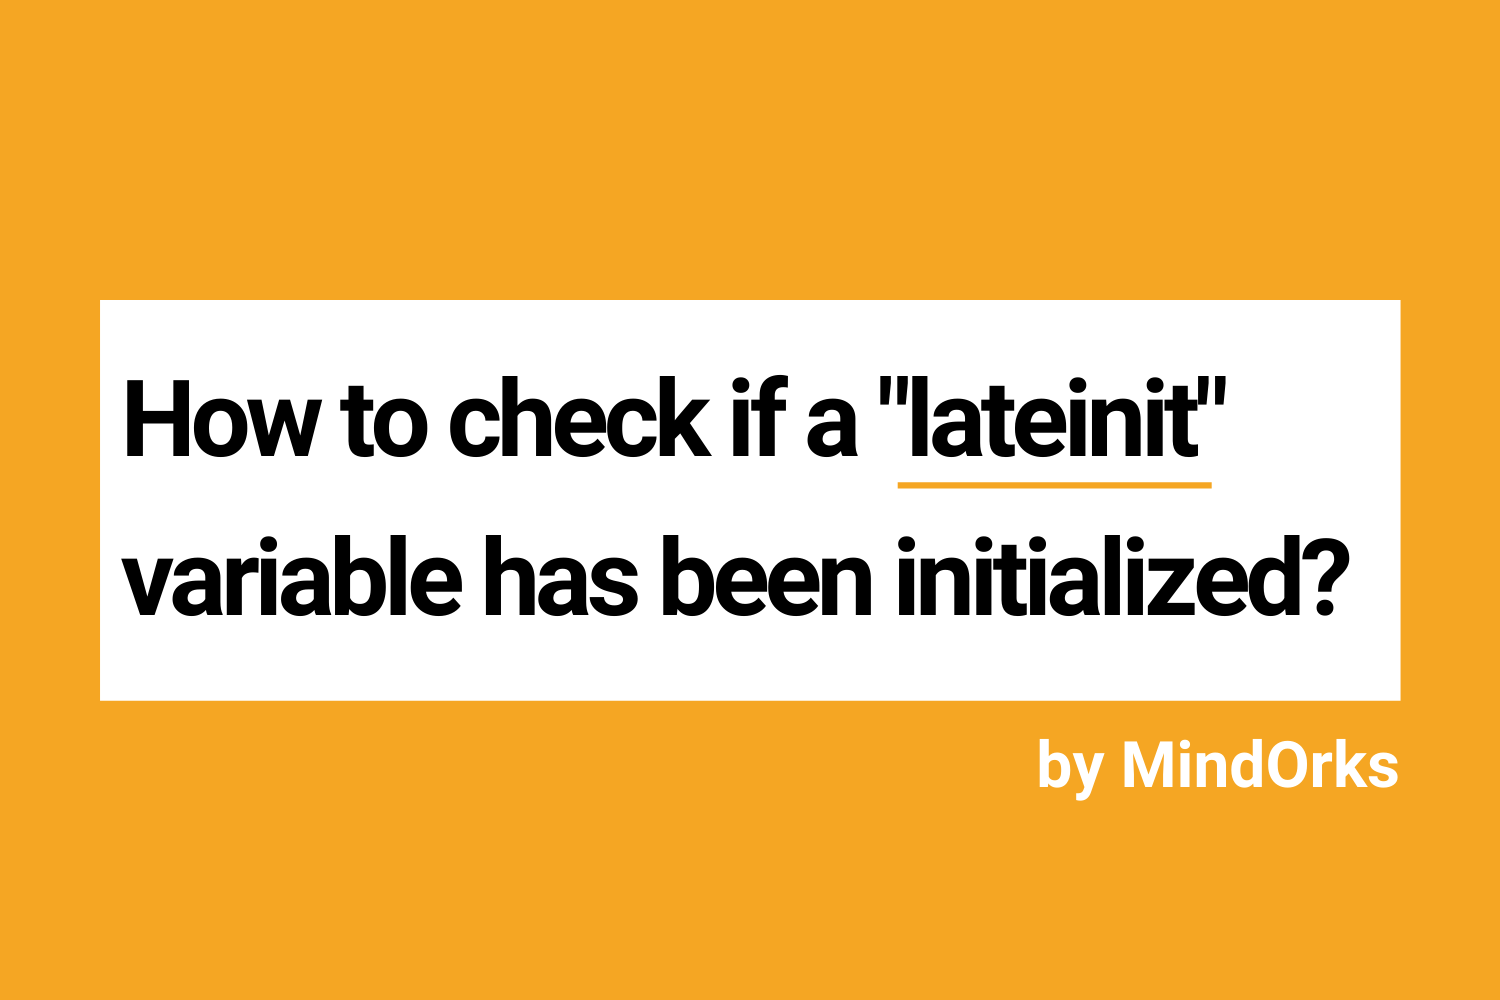 How to check if a lateinit variable has been initialized?